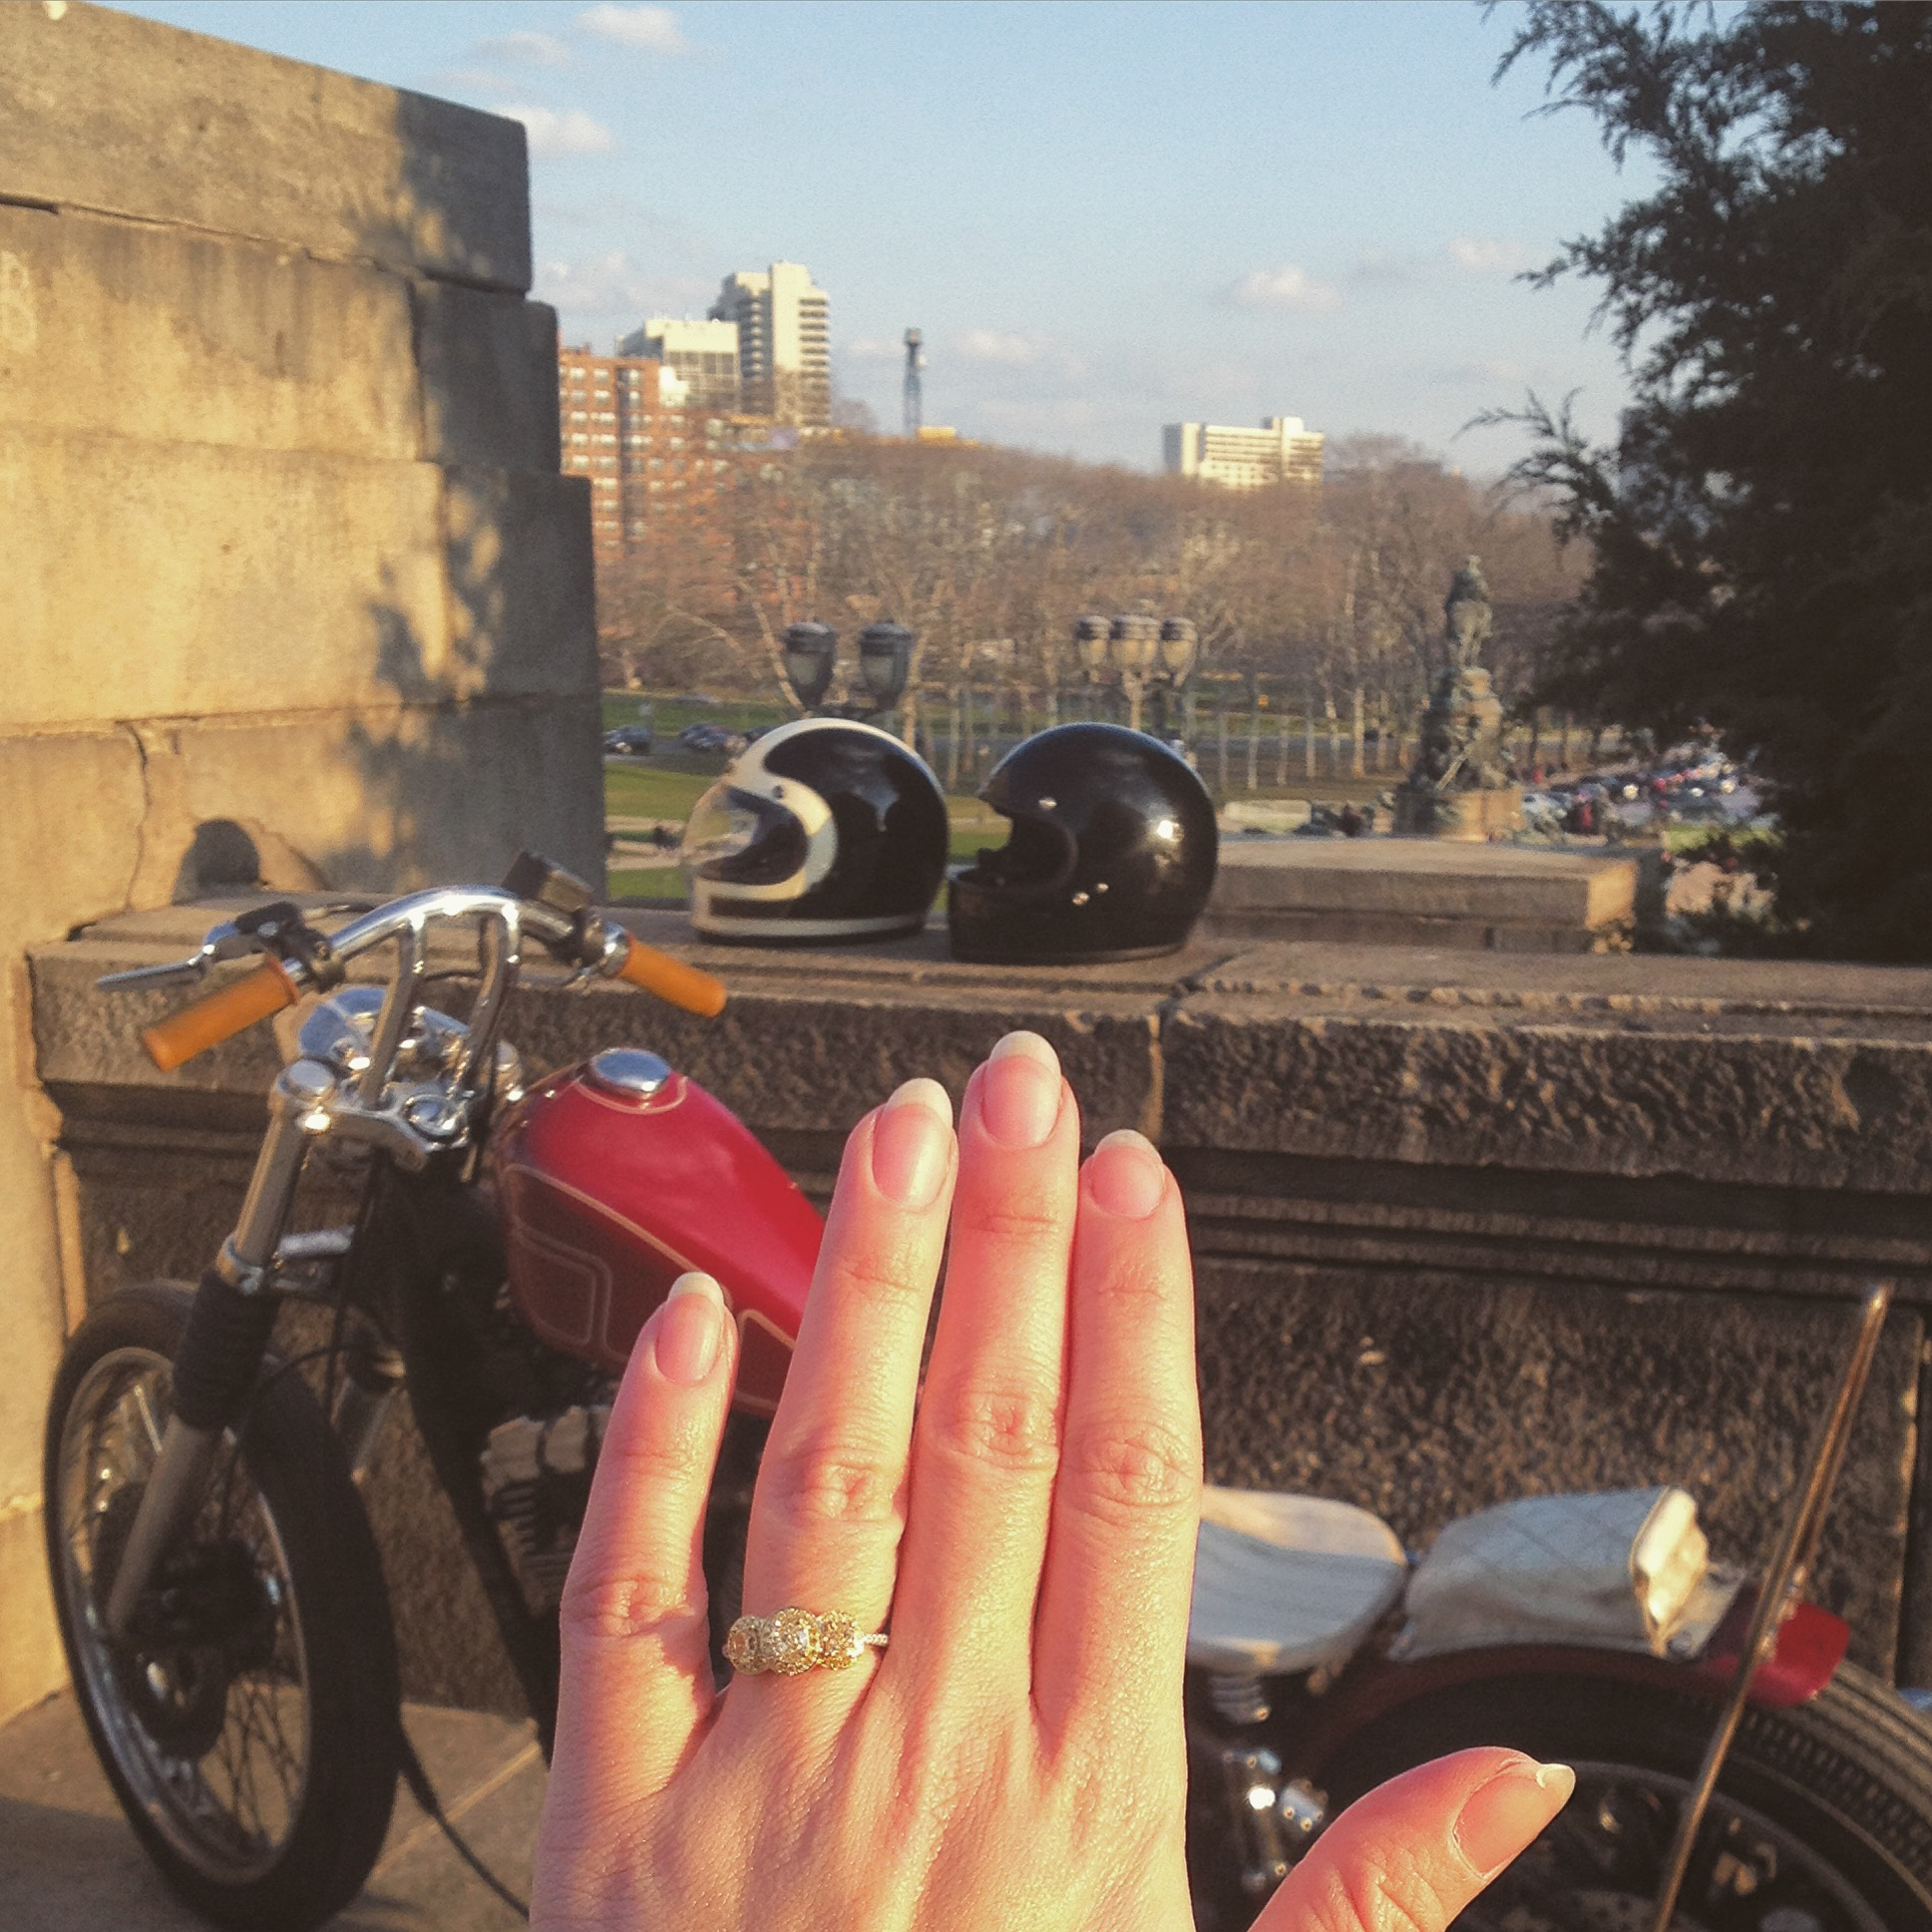 He asked me to go for a ride on the same bike we had our first date on, we ended our ride at the same place, and he asked me to marry him...